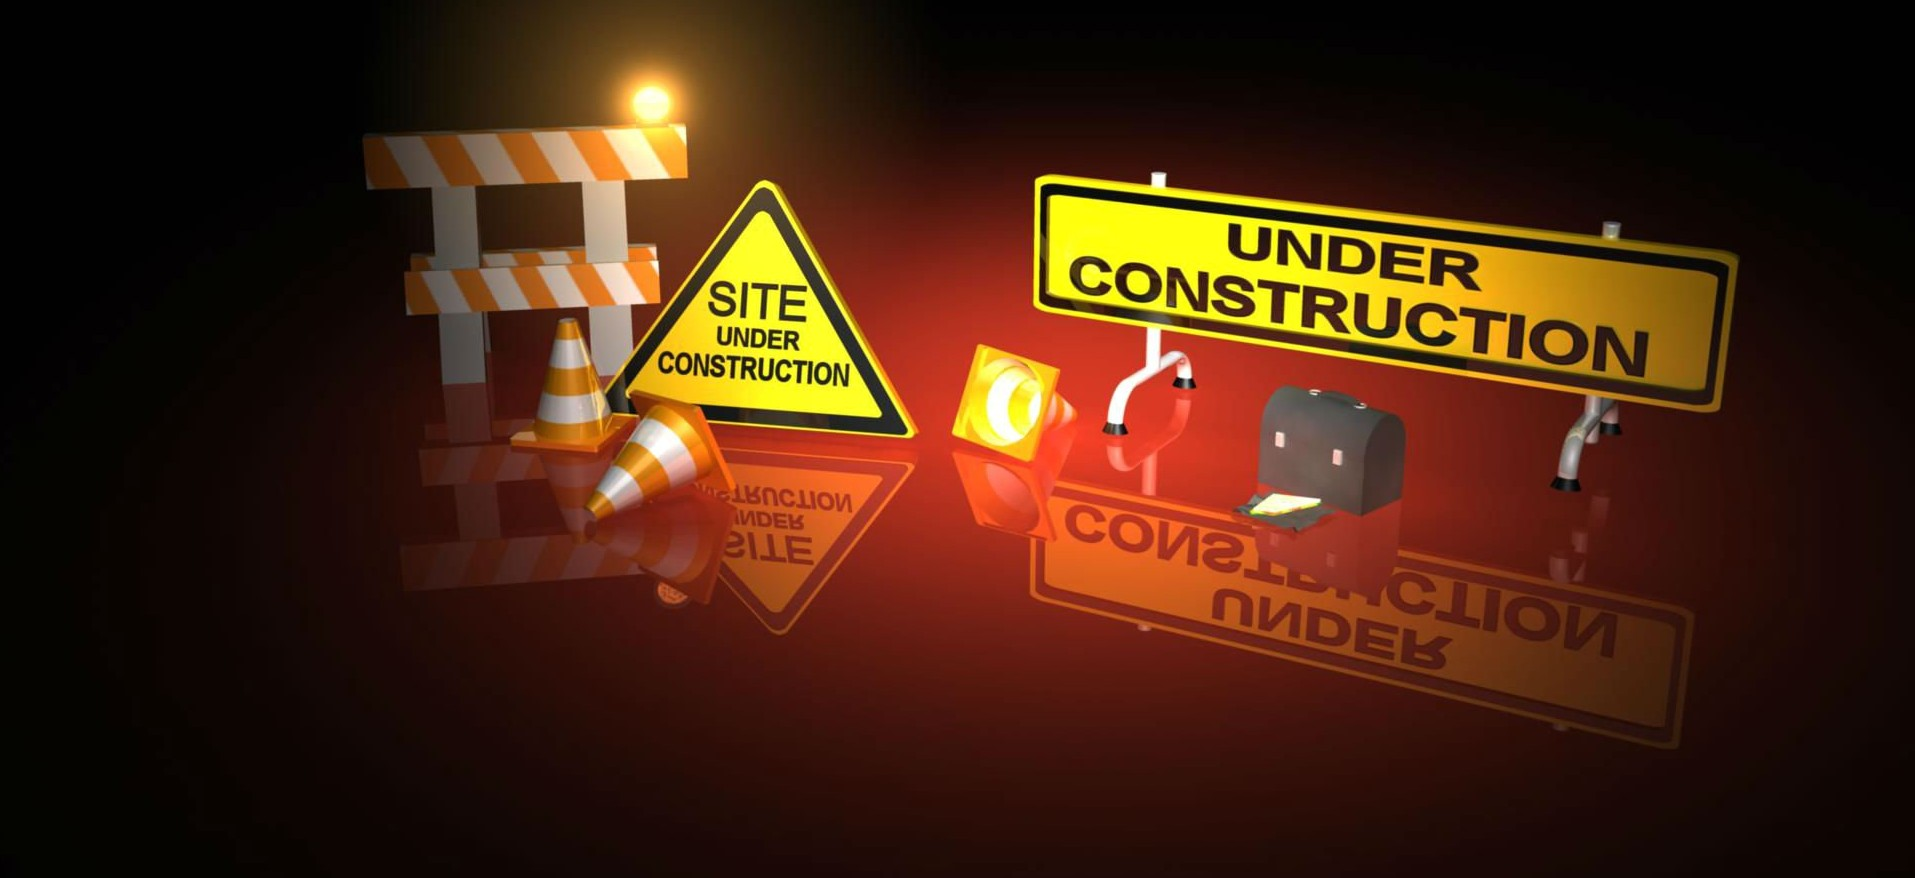 under_construction_sign_work_computer_humor_funny_text_maintenance_wallpaper_website_web_1920x1080